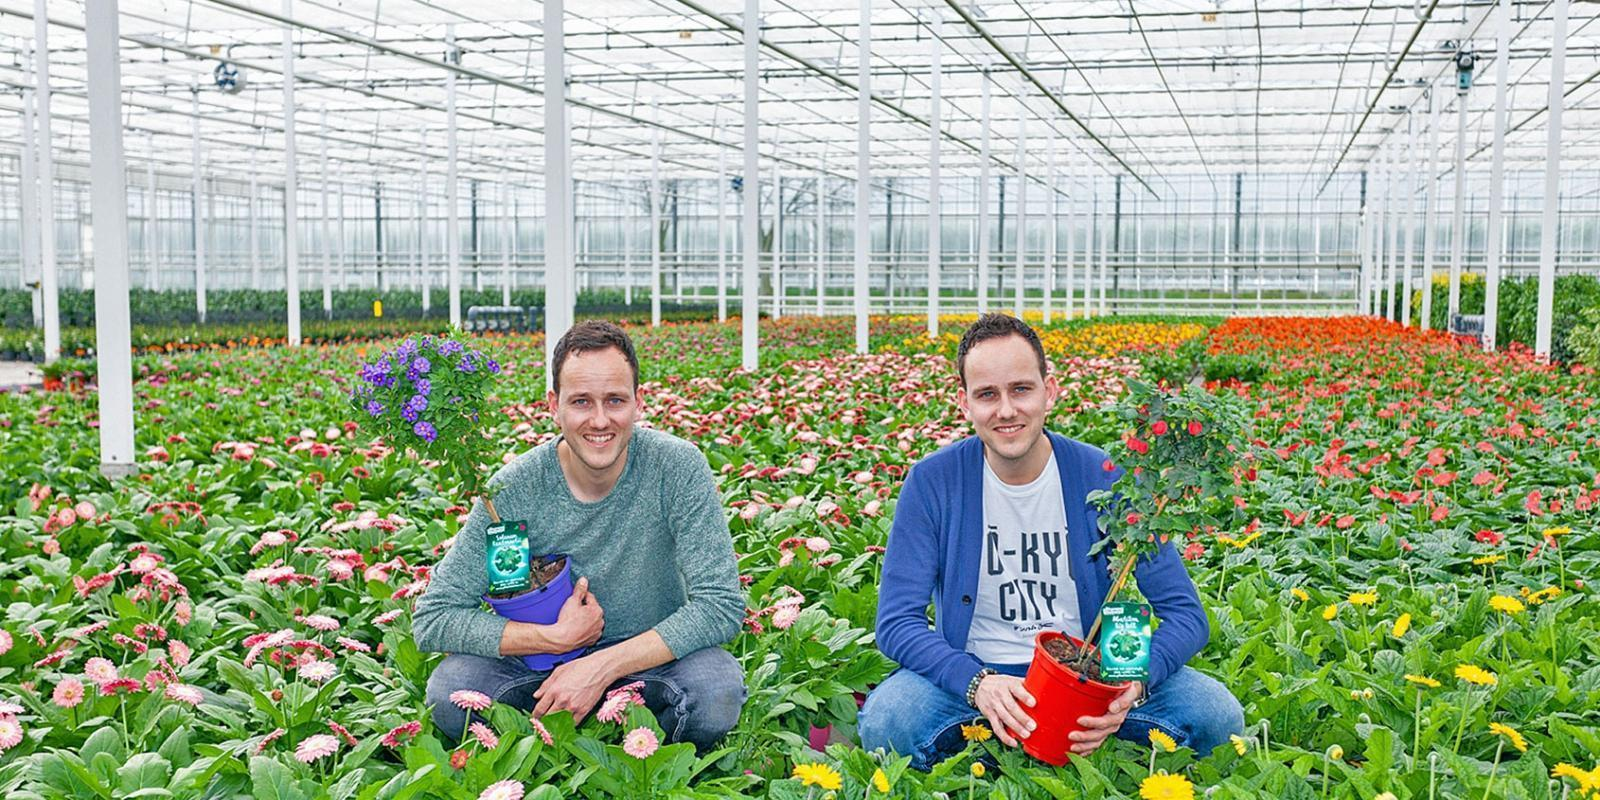 Our growers for Roobos wholesaler for flowers and plants: Plantanious